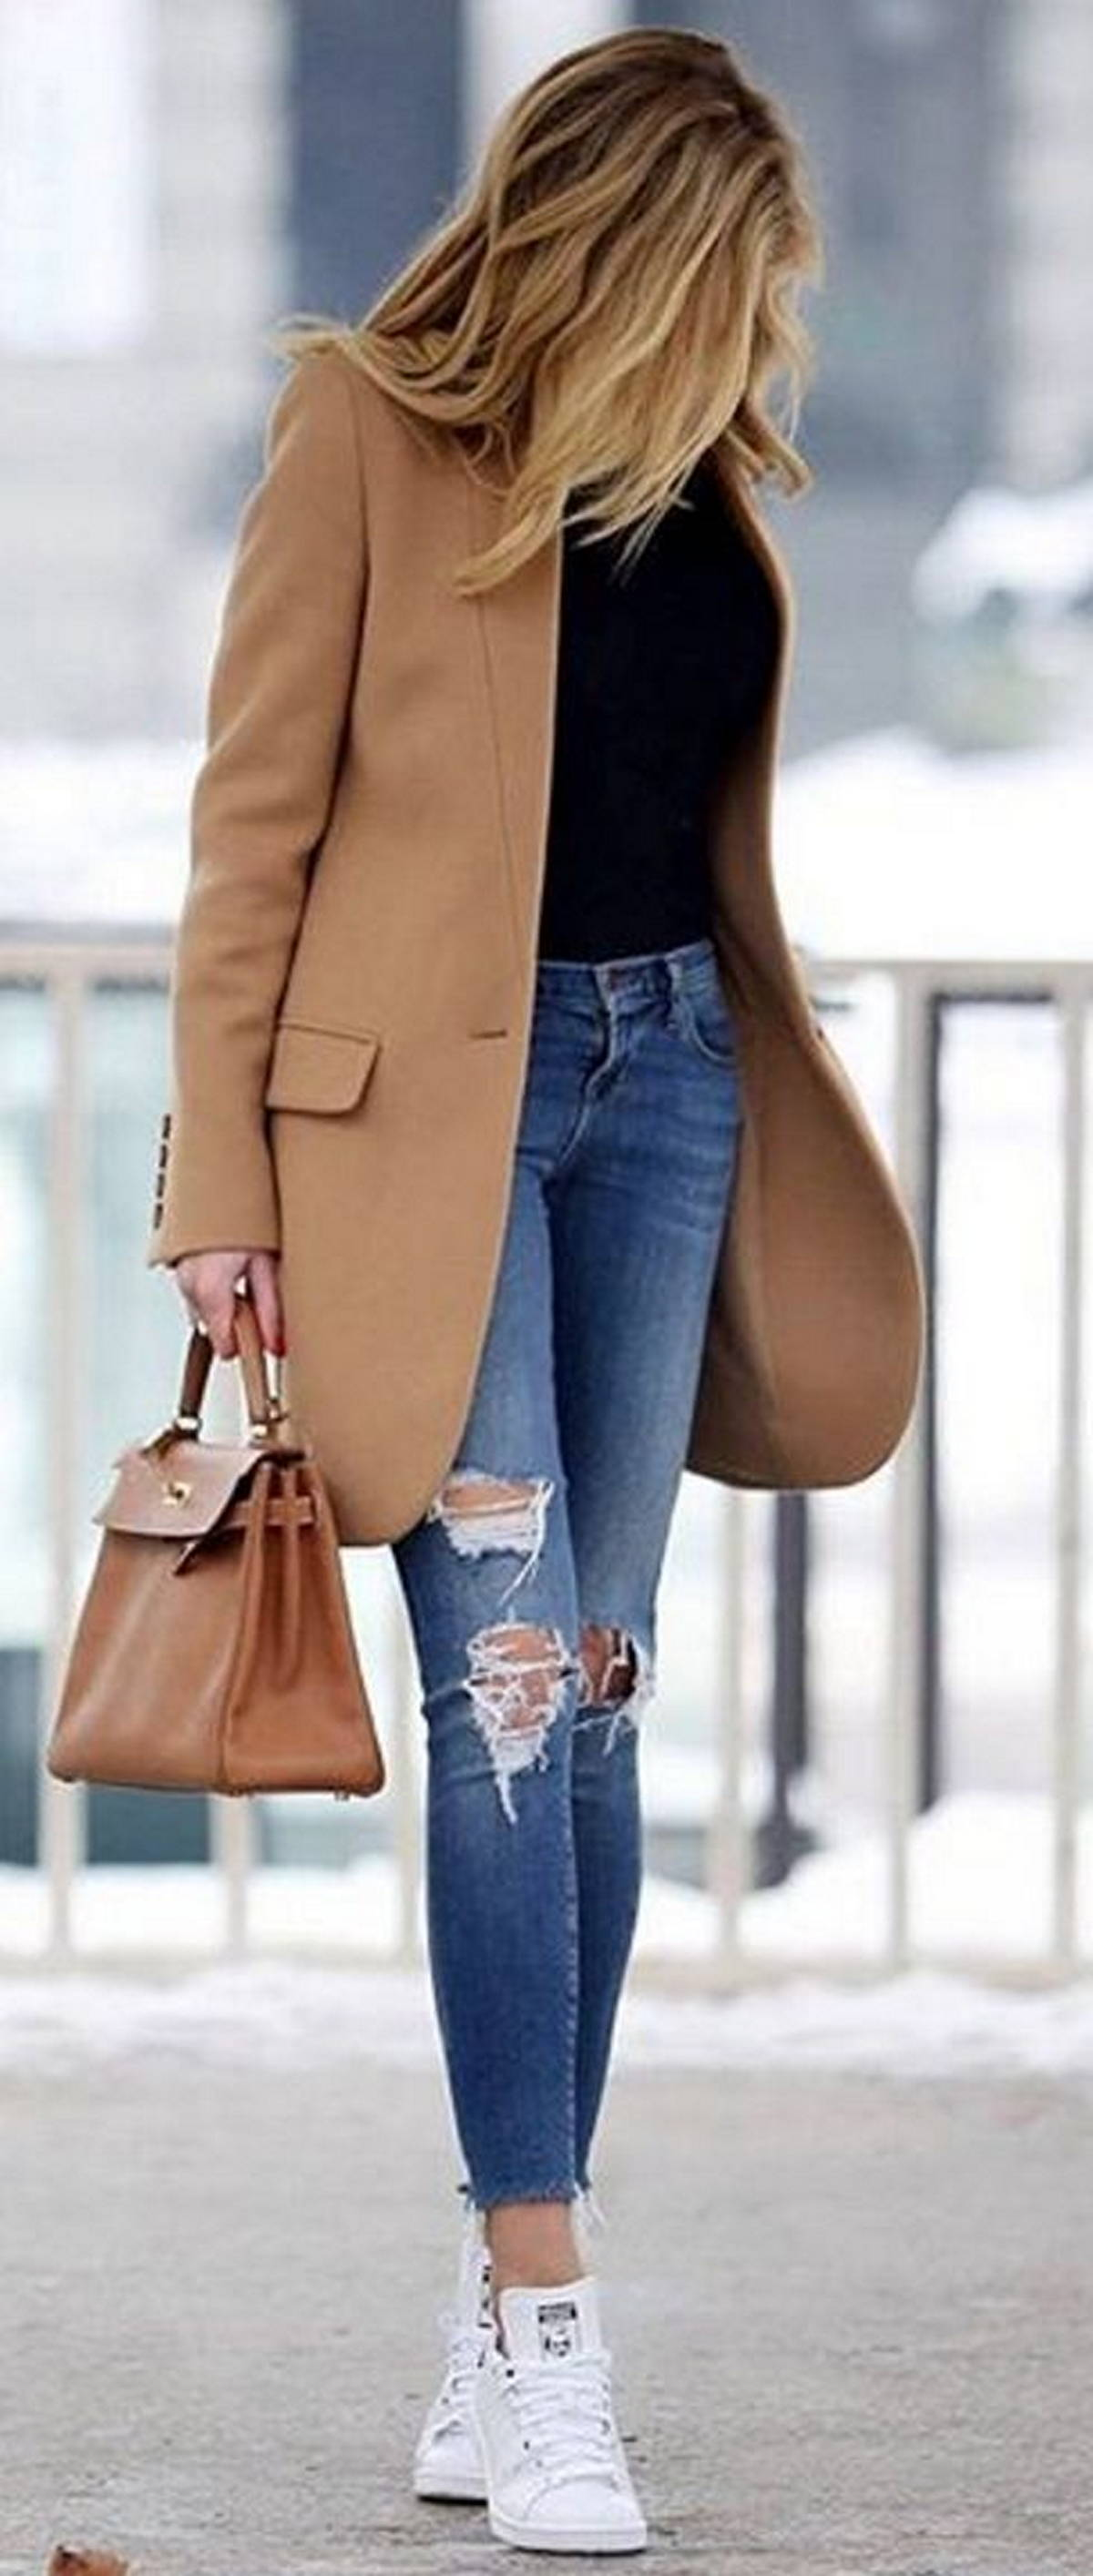 white sneakers women outfit